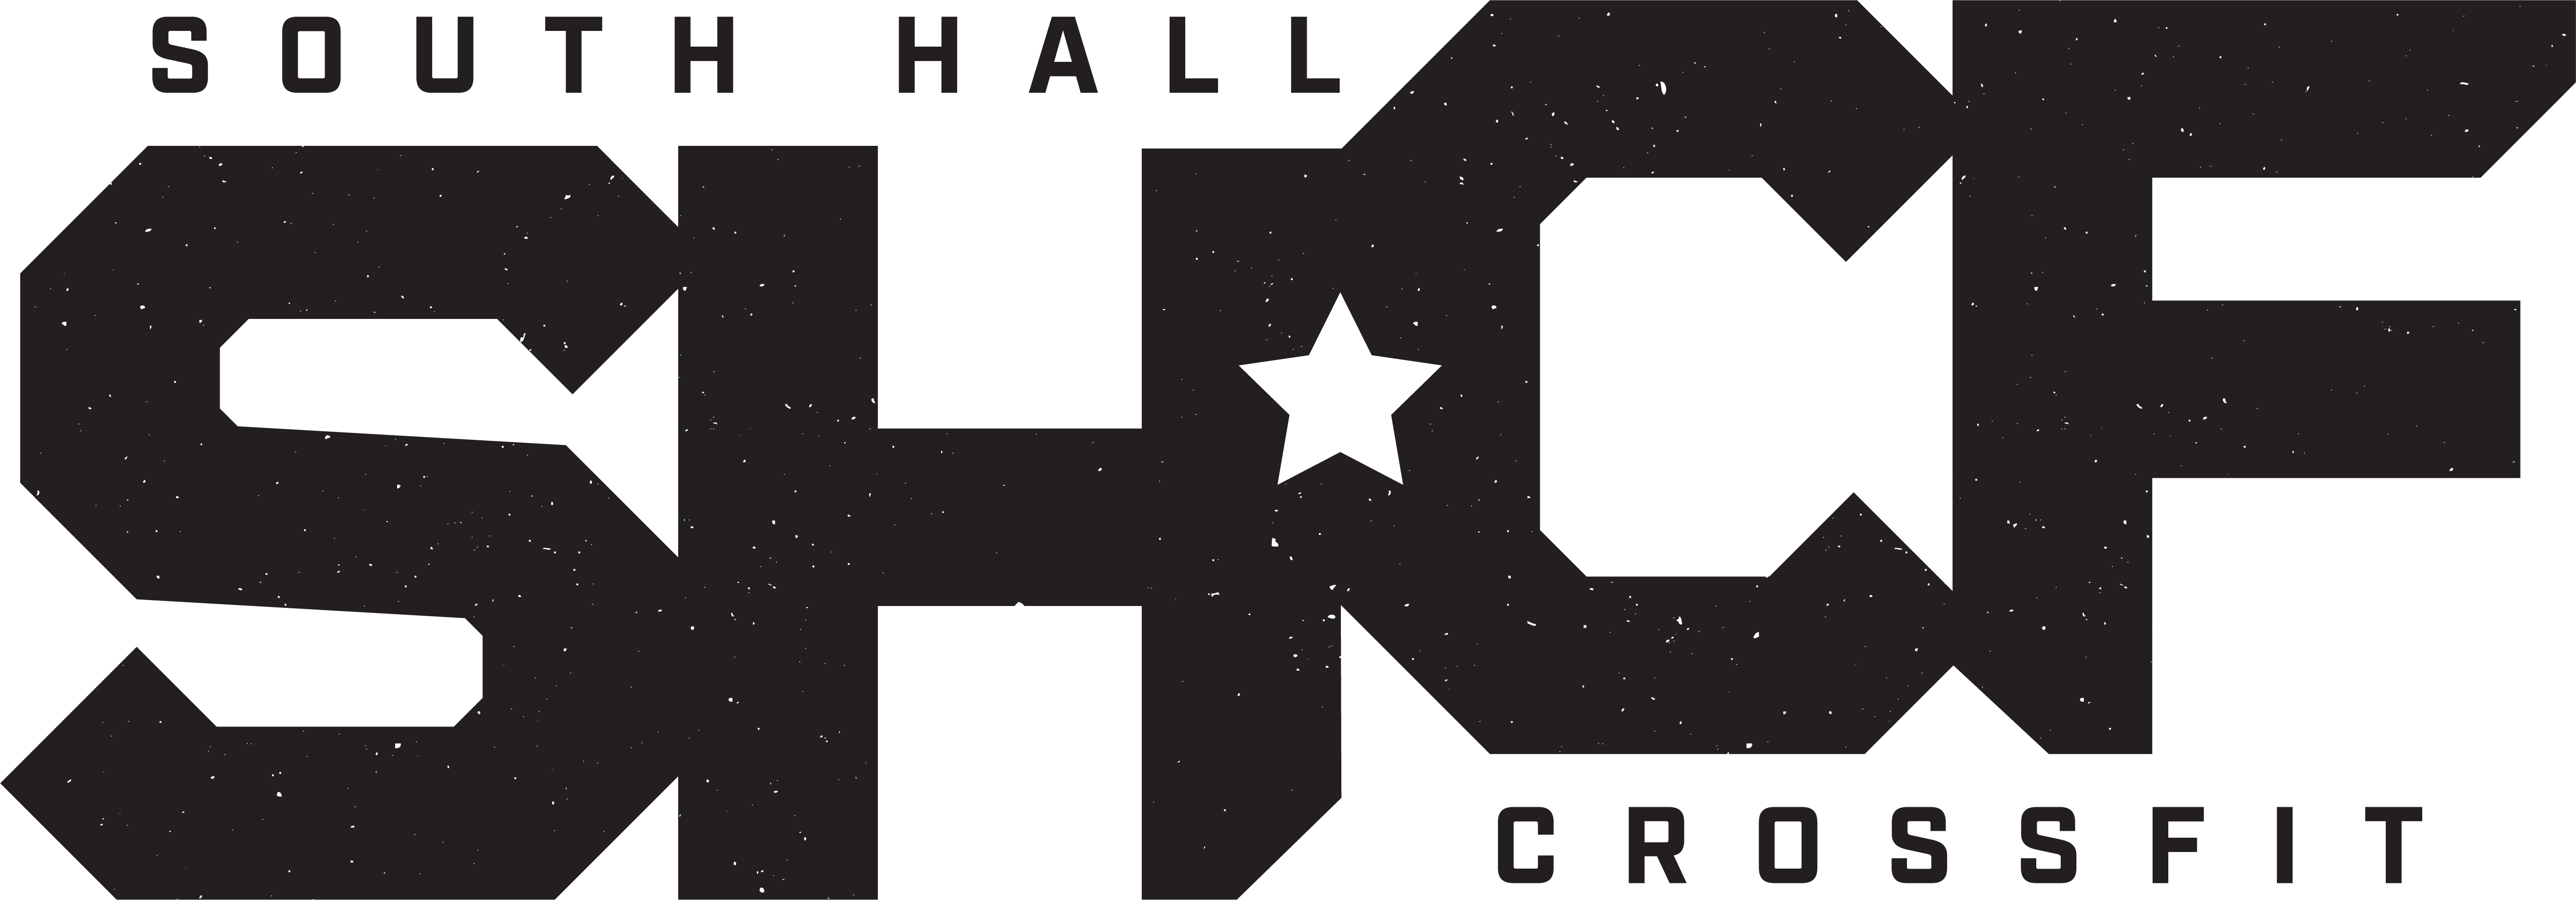 South Hall CrossFit logo